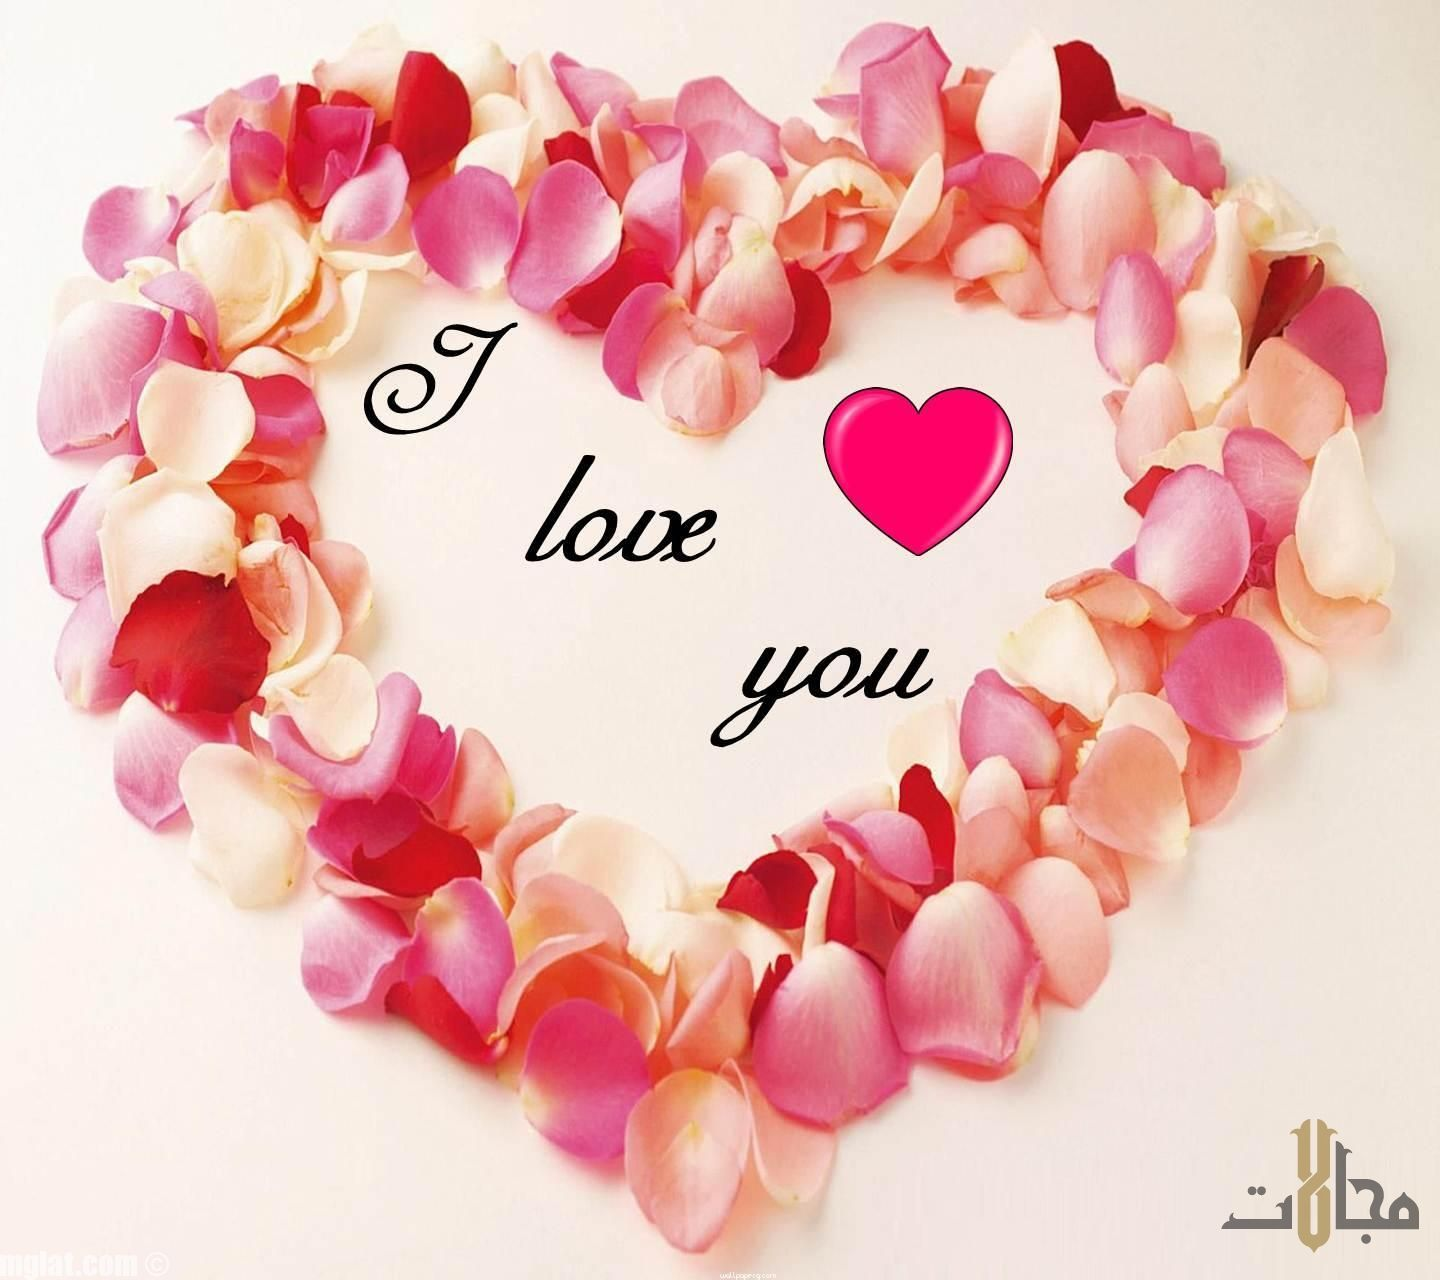 صور قلوب رومانسية جميلة مجالات I Love You Images Love You Images Hd Wallpapers For Mobile